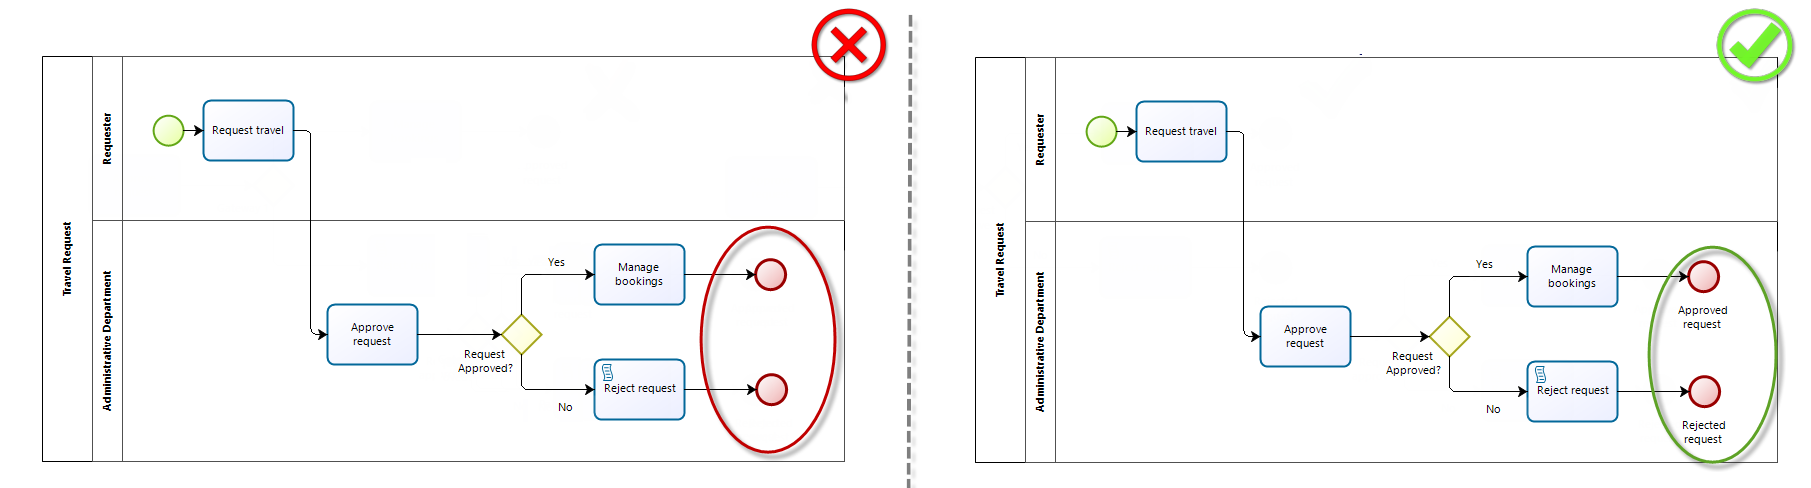 Bizagi Studio Best Practices And Implementation Guidelines Process Flow Diagram Using Bpmn Notation Bestpractices27